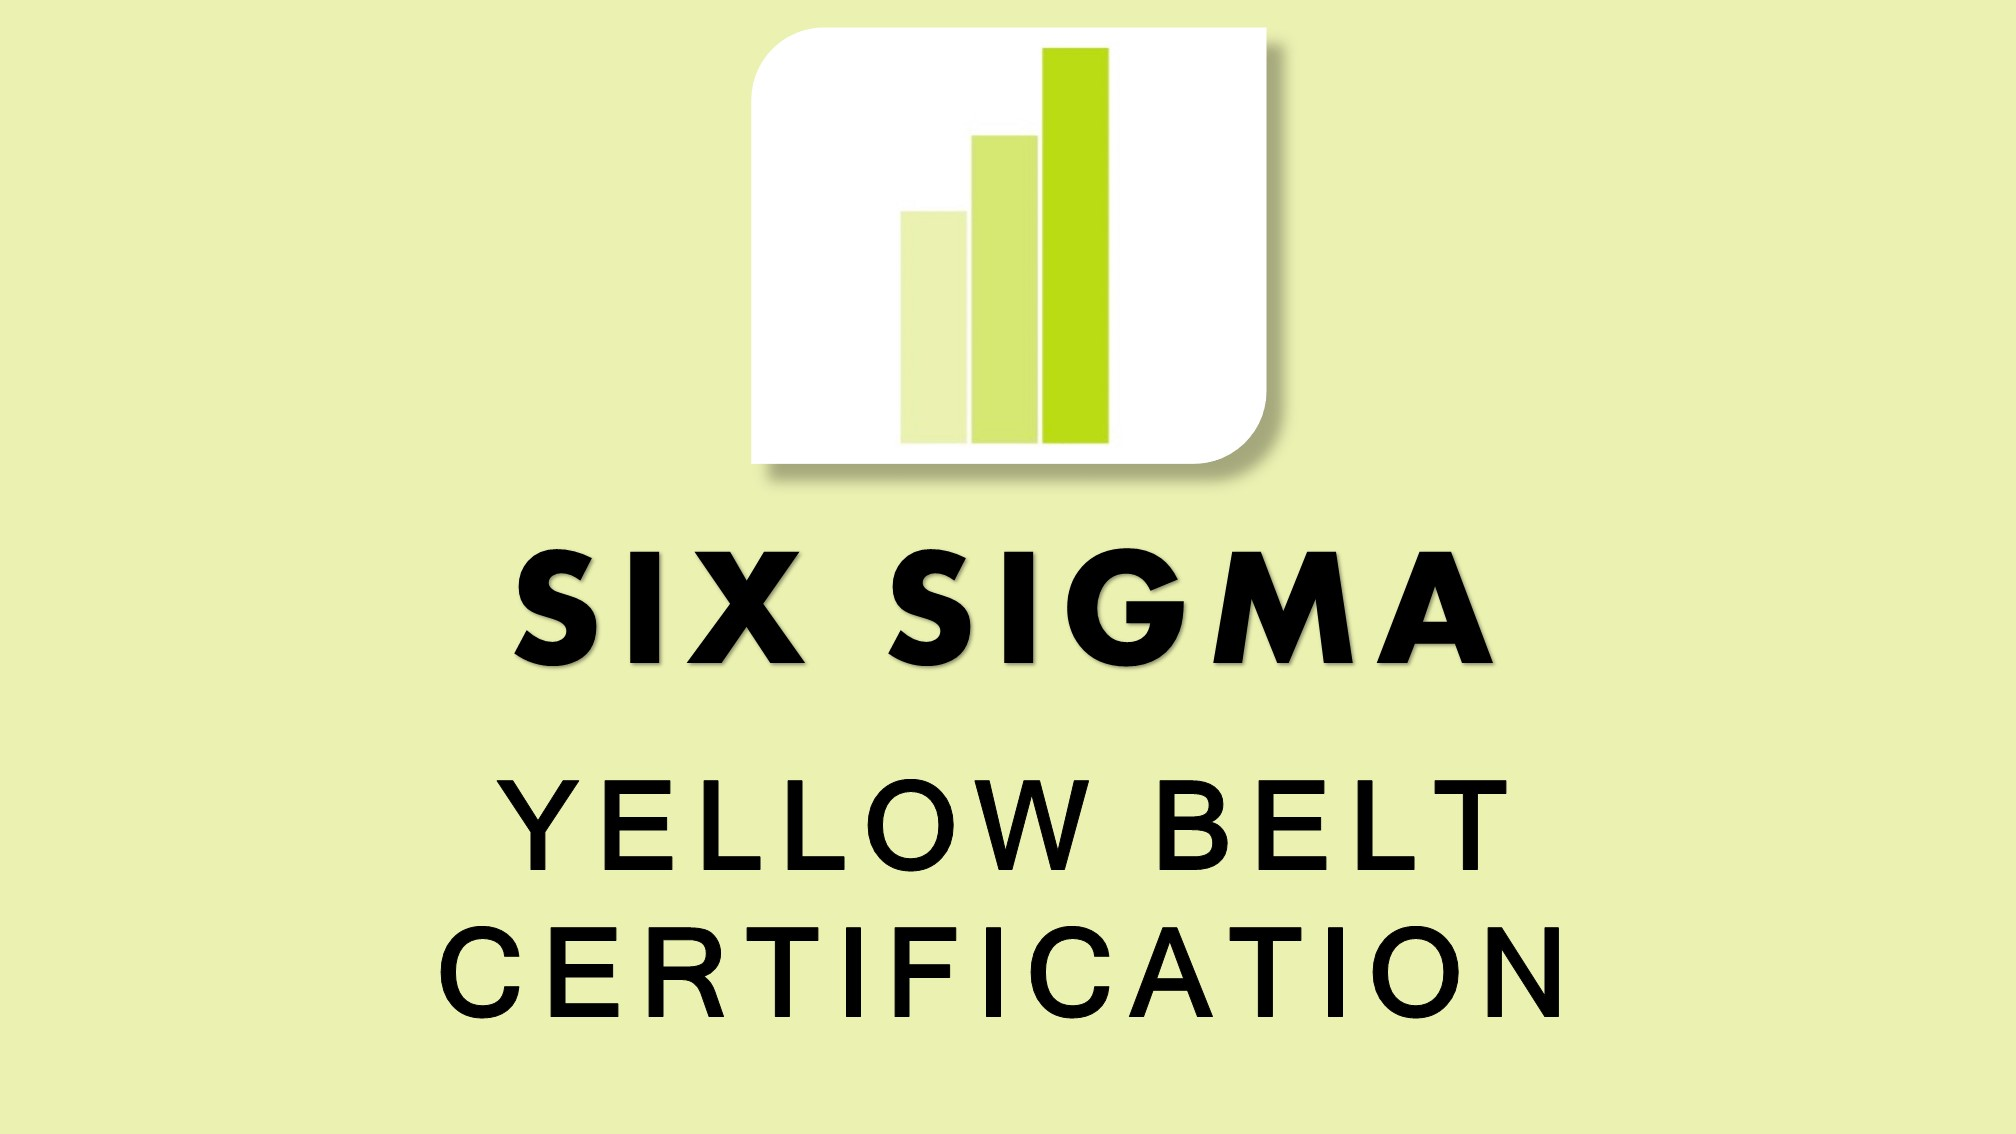 Six Sigma Yellow Belt Training Course And Certification Australia